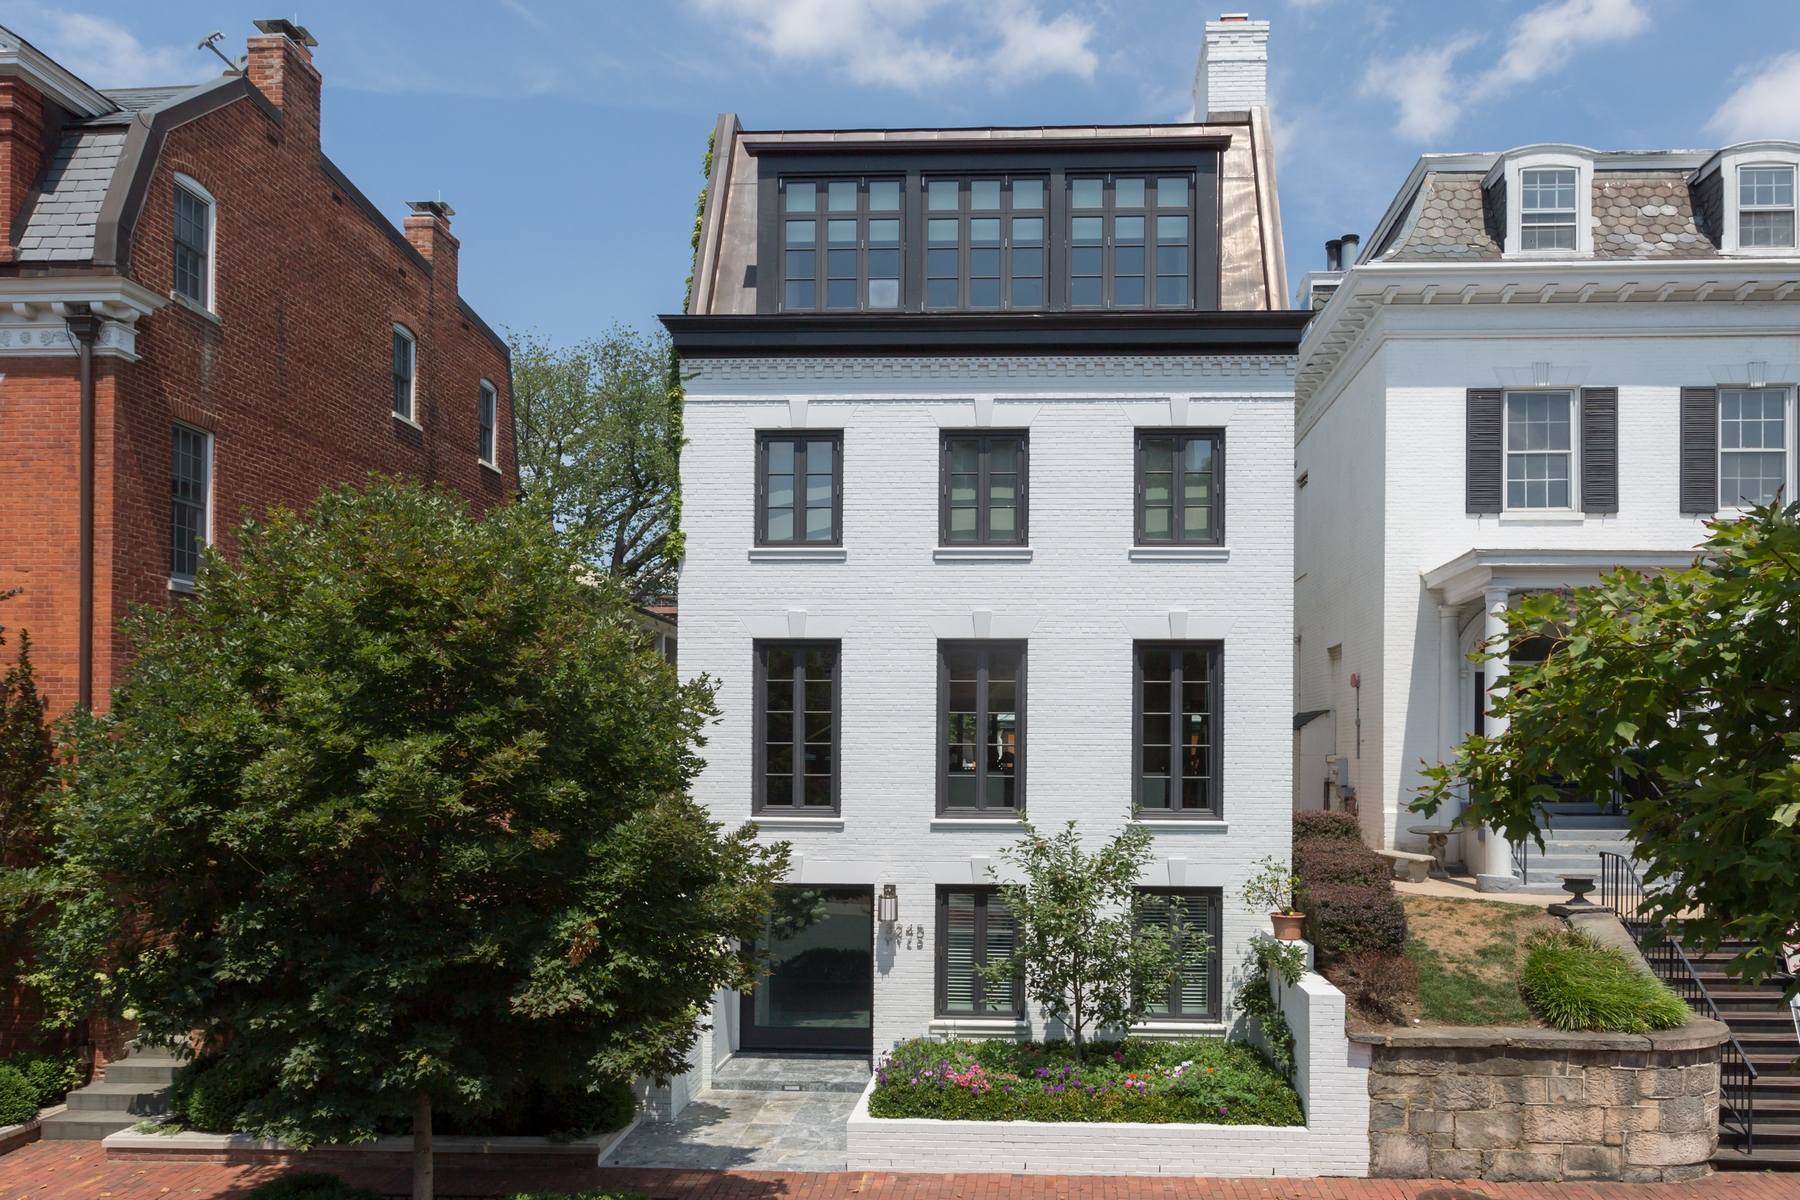 Single Family Home for Sale at Georgetown 3245 N Street NW Georgetown, Washington, District Of Columbia 20007 United States